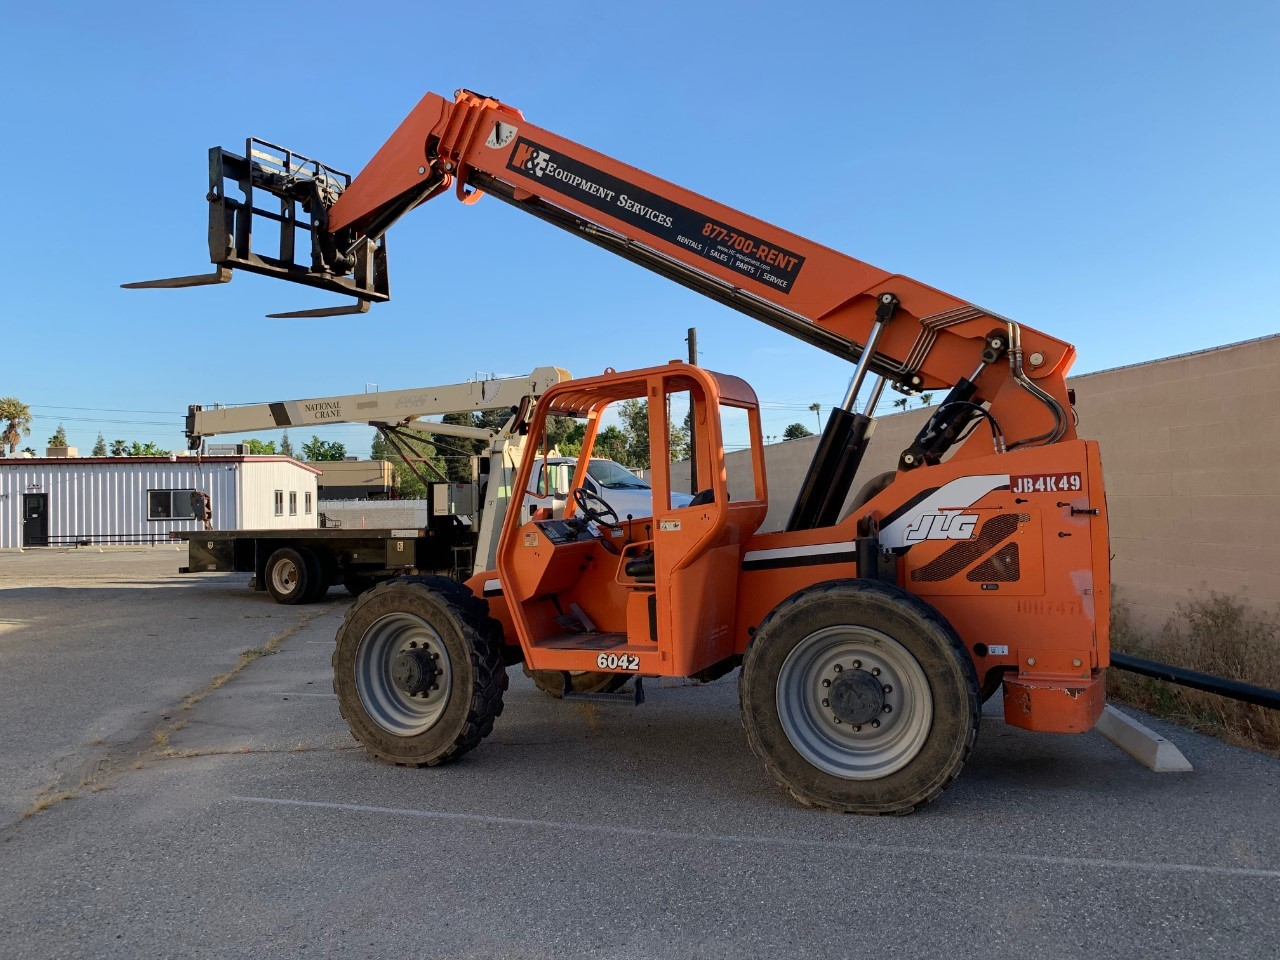 Skytrak For Sale - Skytrak Telehandler - Equipment Trader